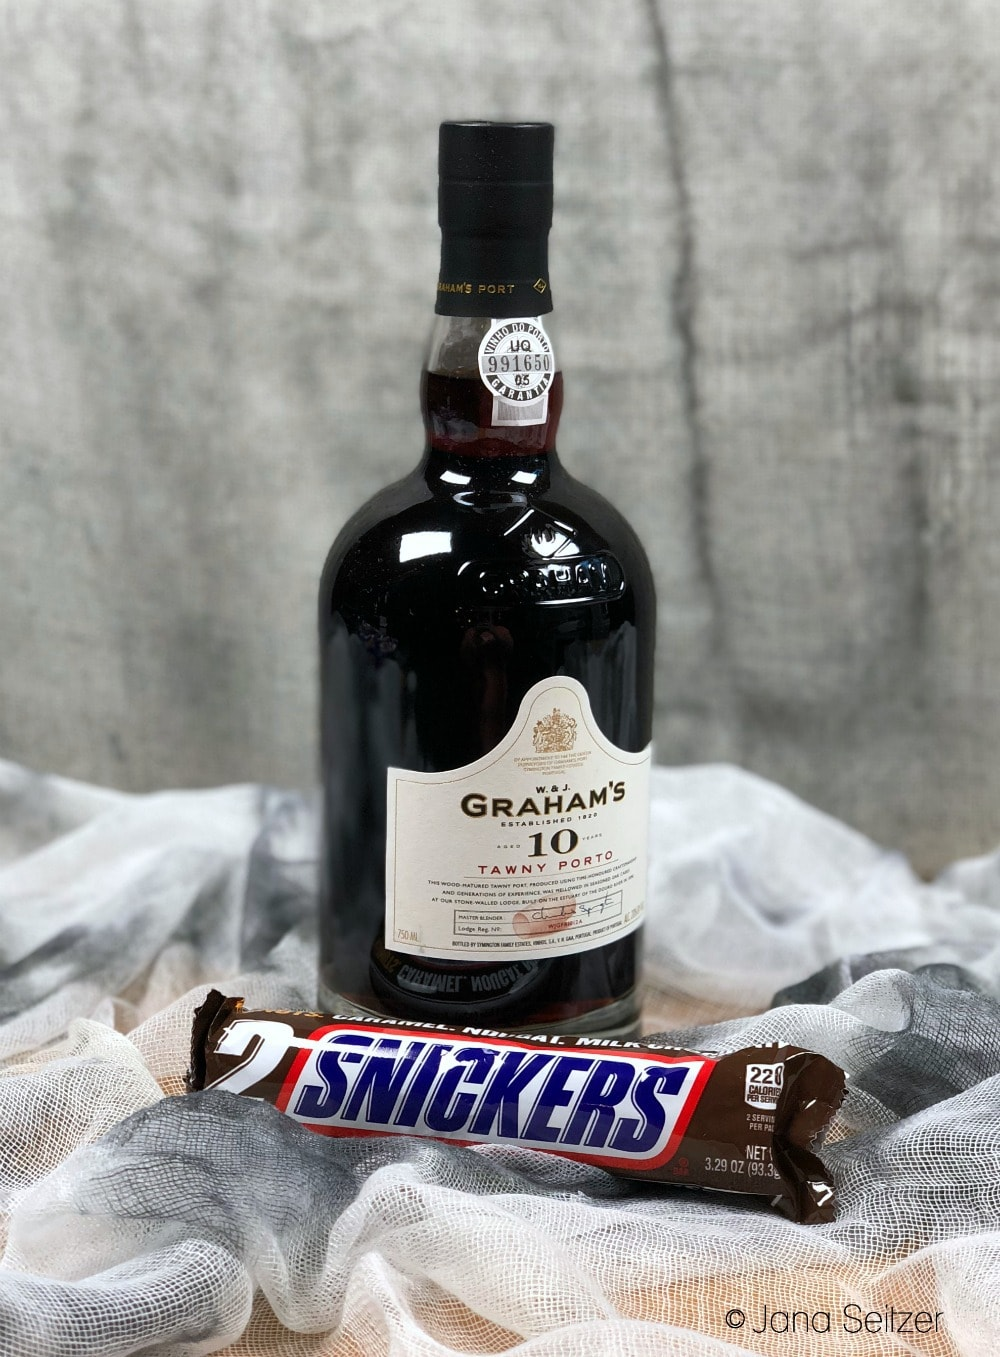 grahams 10 year tawny port snickers - How to Pair Halloween Candy with Port